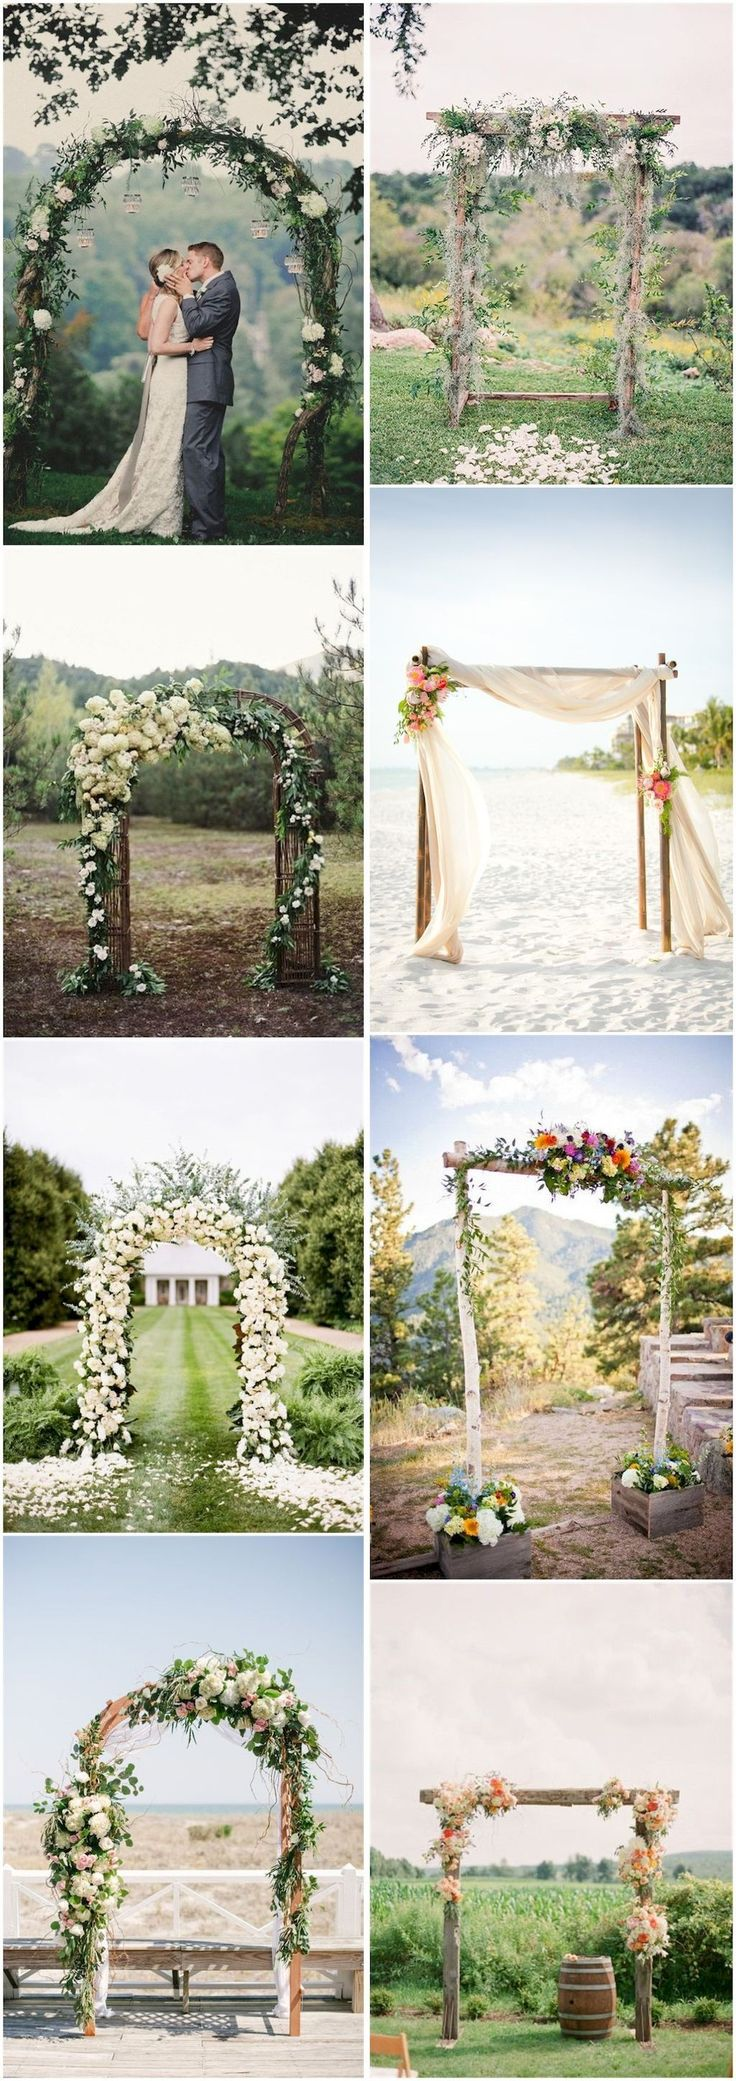 Best 25 wedding arbors ideas on pinterest wedding alter for Backyard wedding decoration ideas on a budget